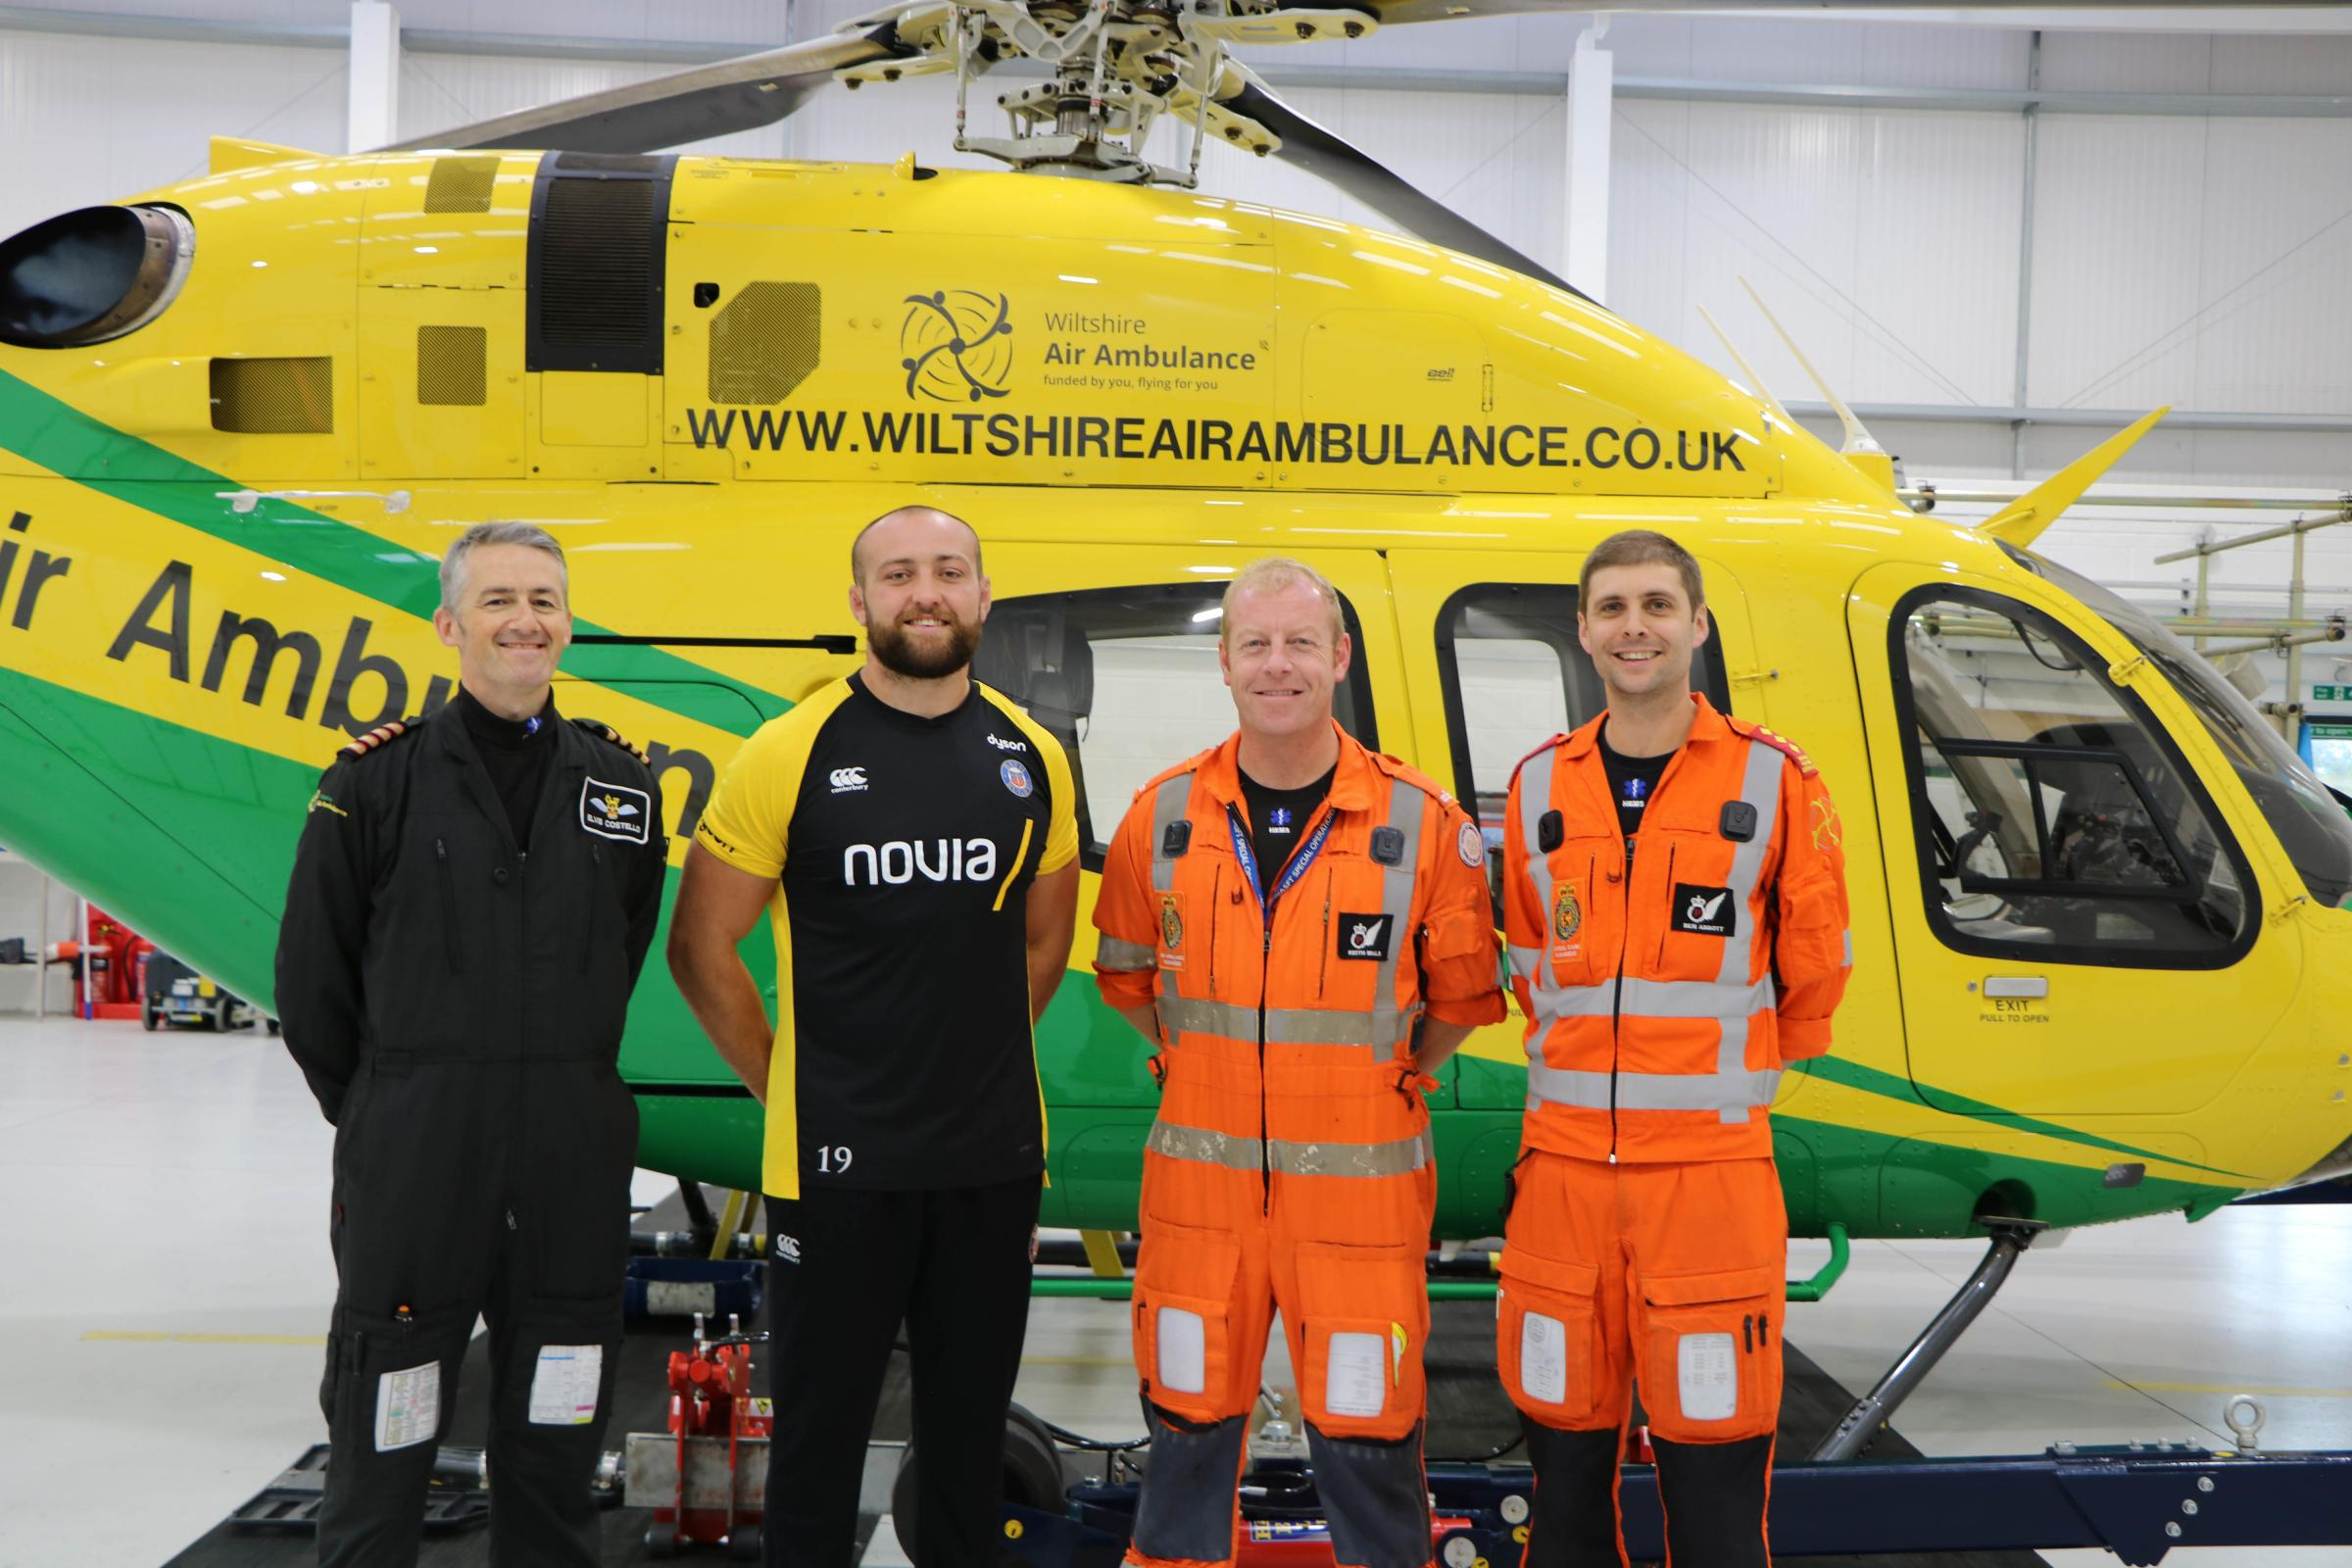 Rugby star Tom is latest Face of Wiltshire Air Ambulance